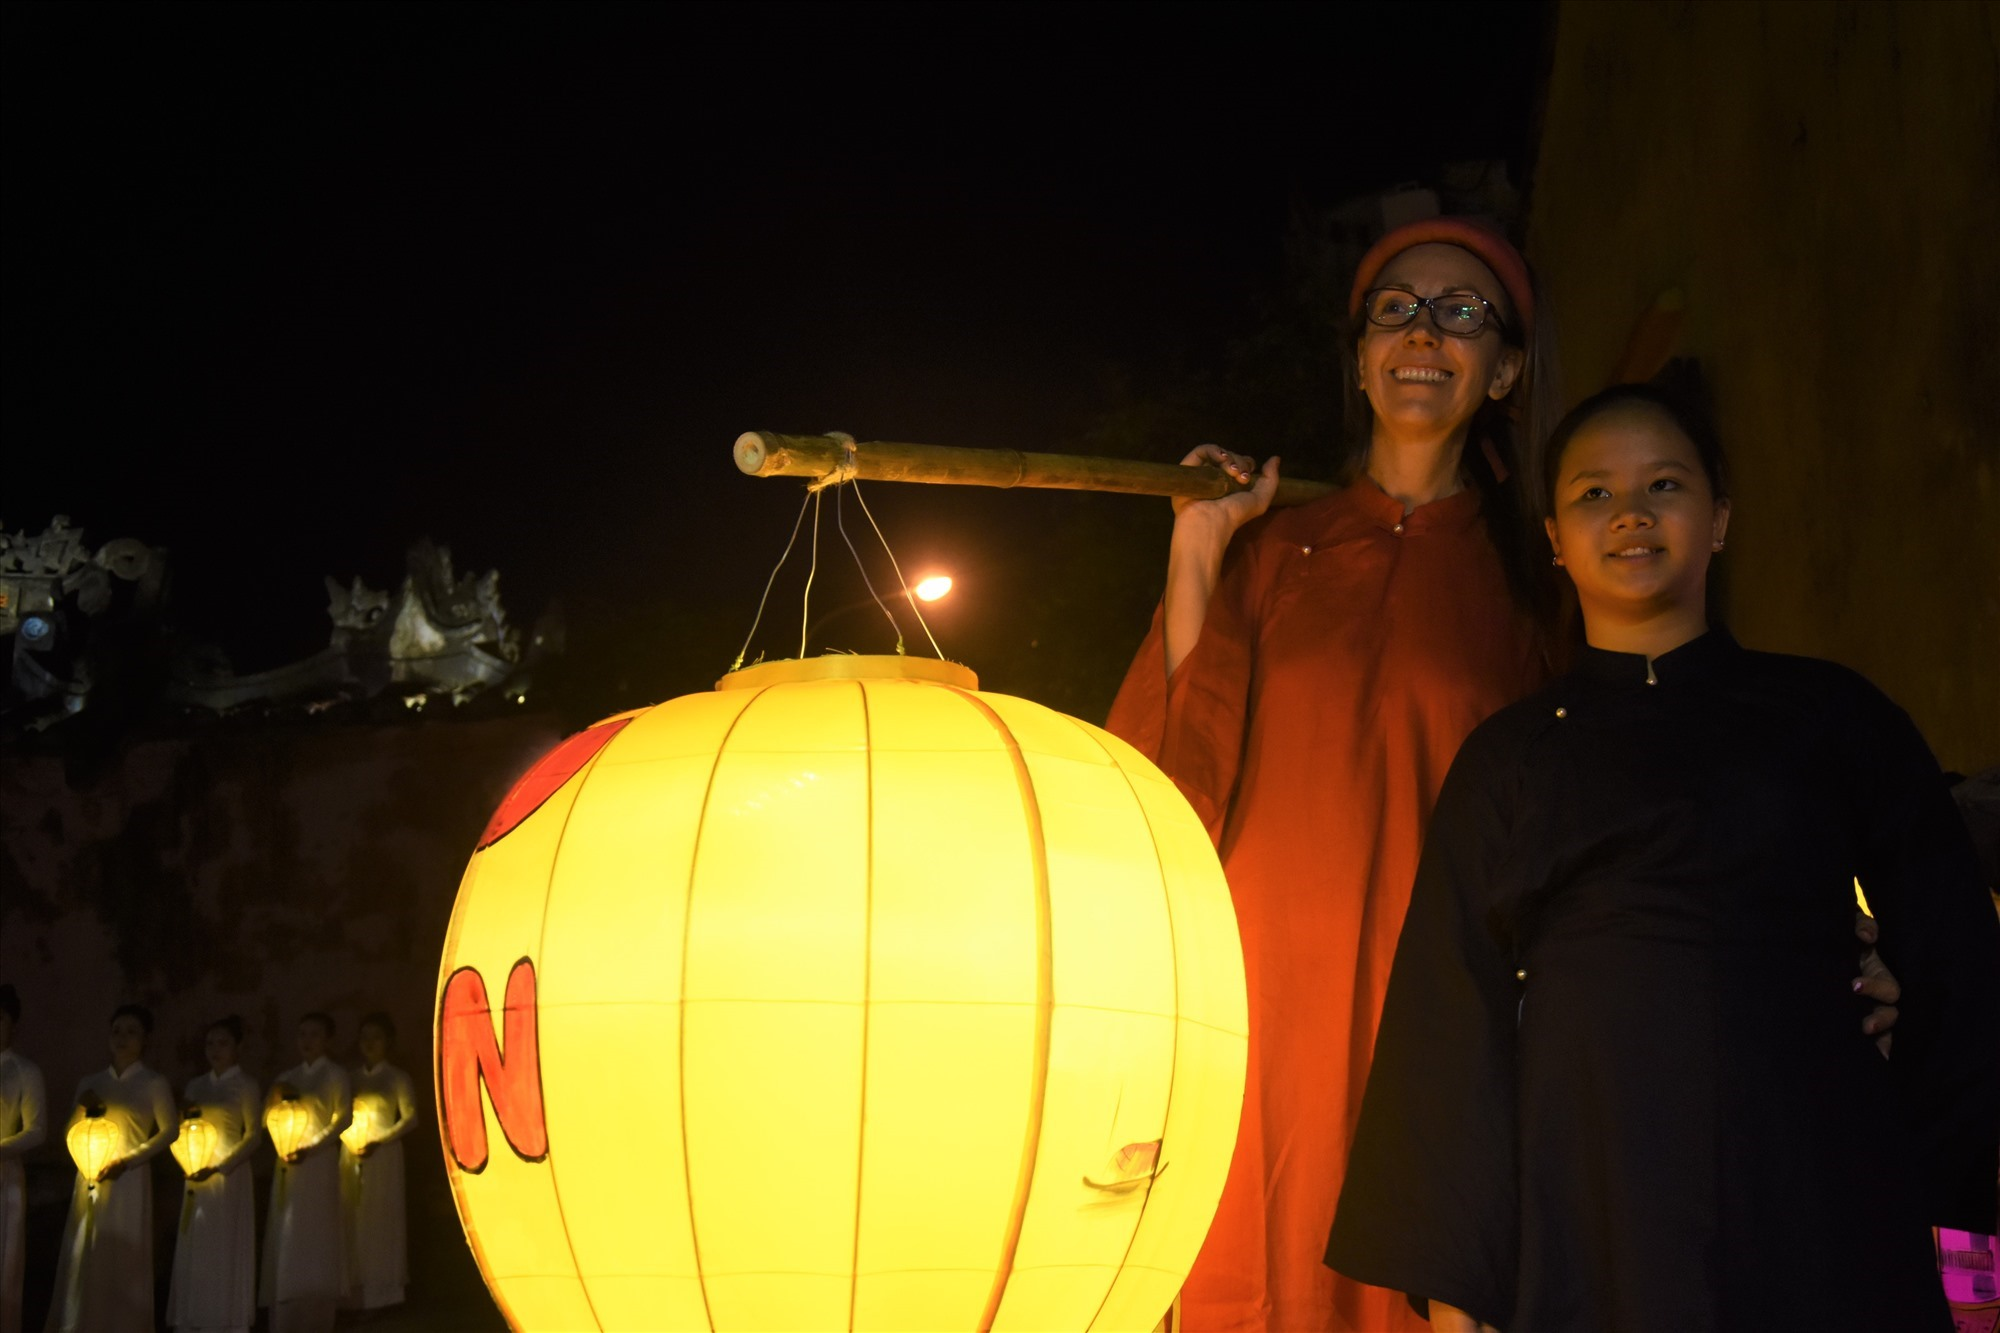 Welcoming visitors to Hoi An